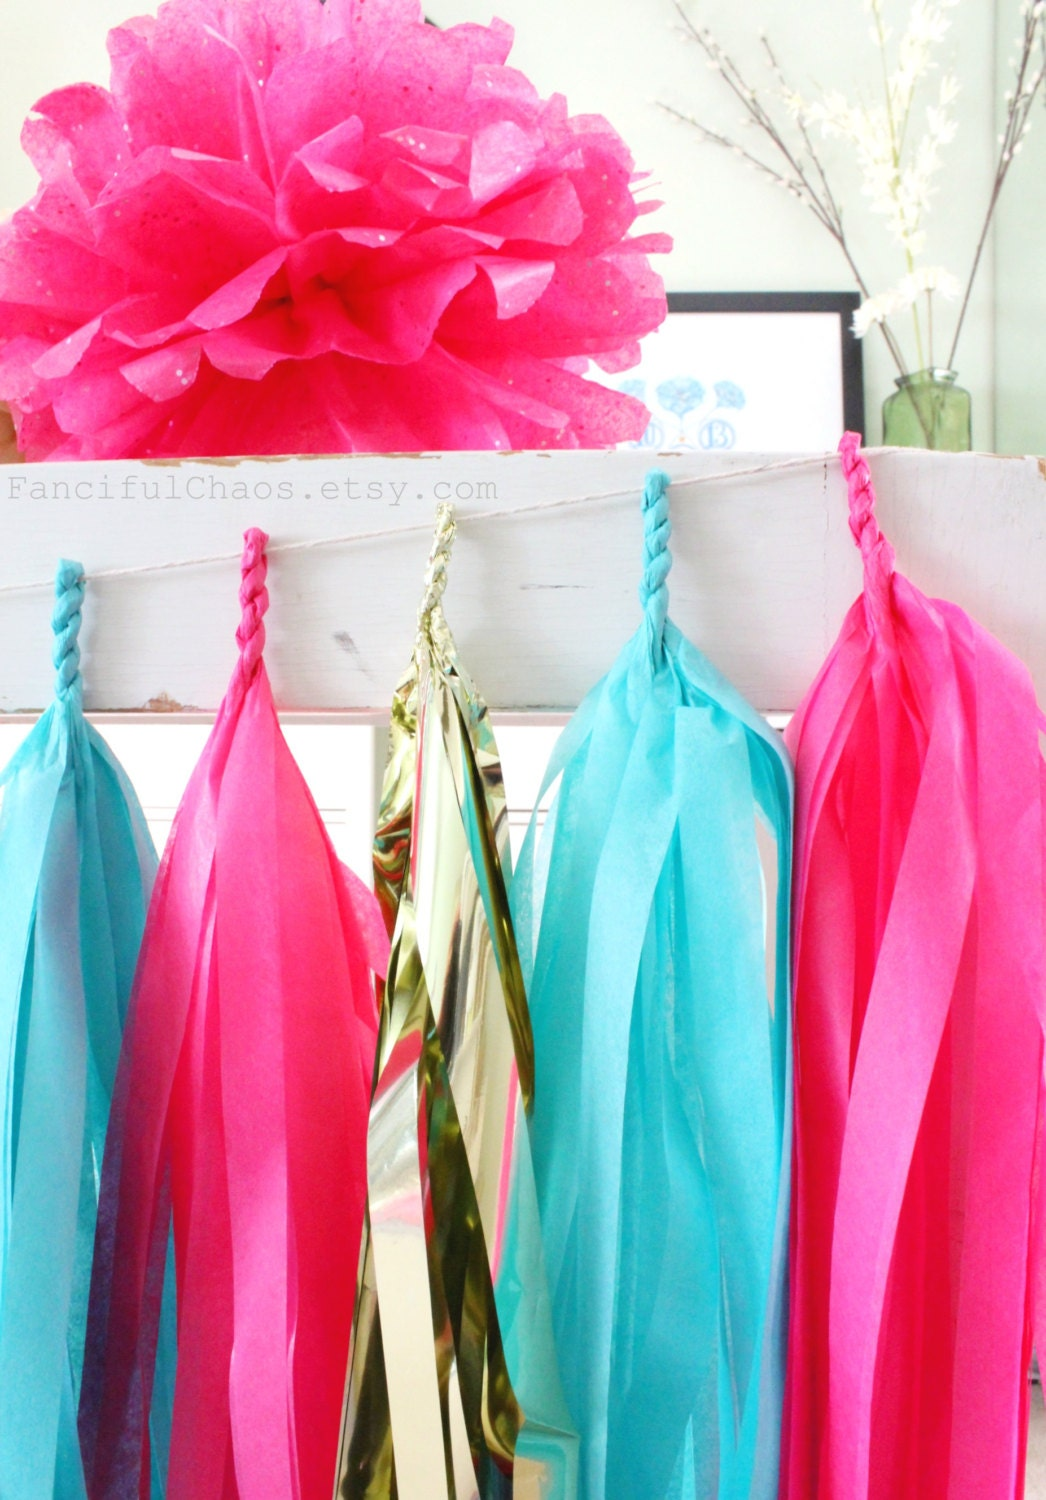 turquoise tissue paper Mermaid party decorations wedding party decorations purple lavender turquoise blue tissue paper pom poms flowers paper flower balls paper lanterns boys birthday party.